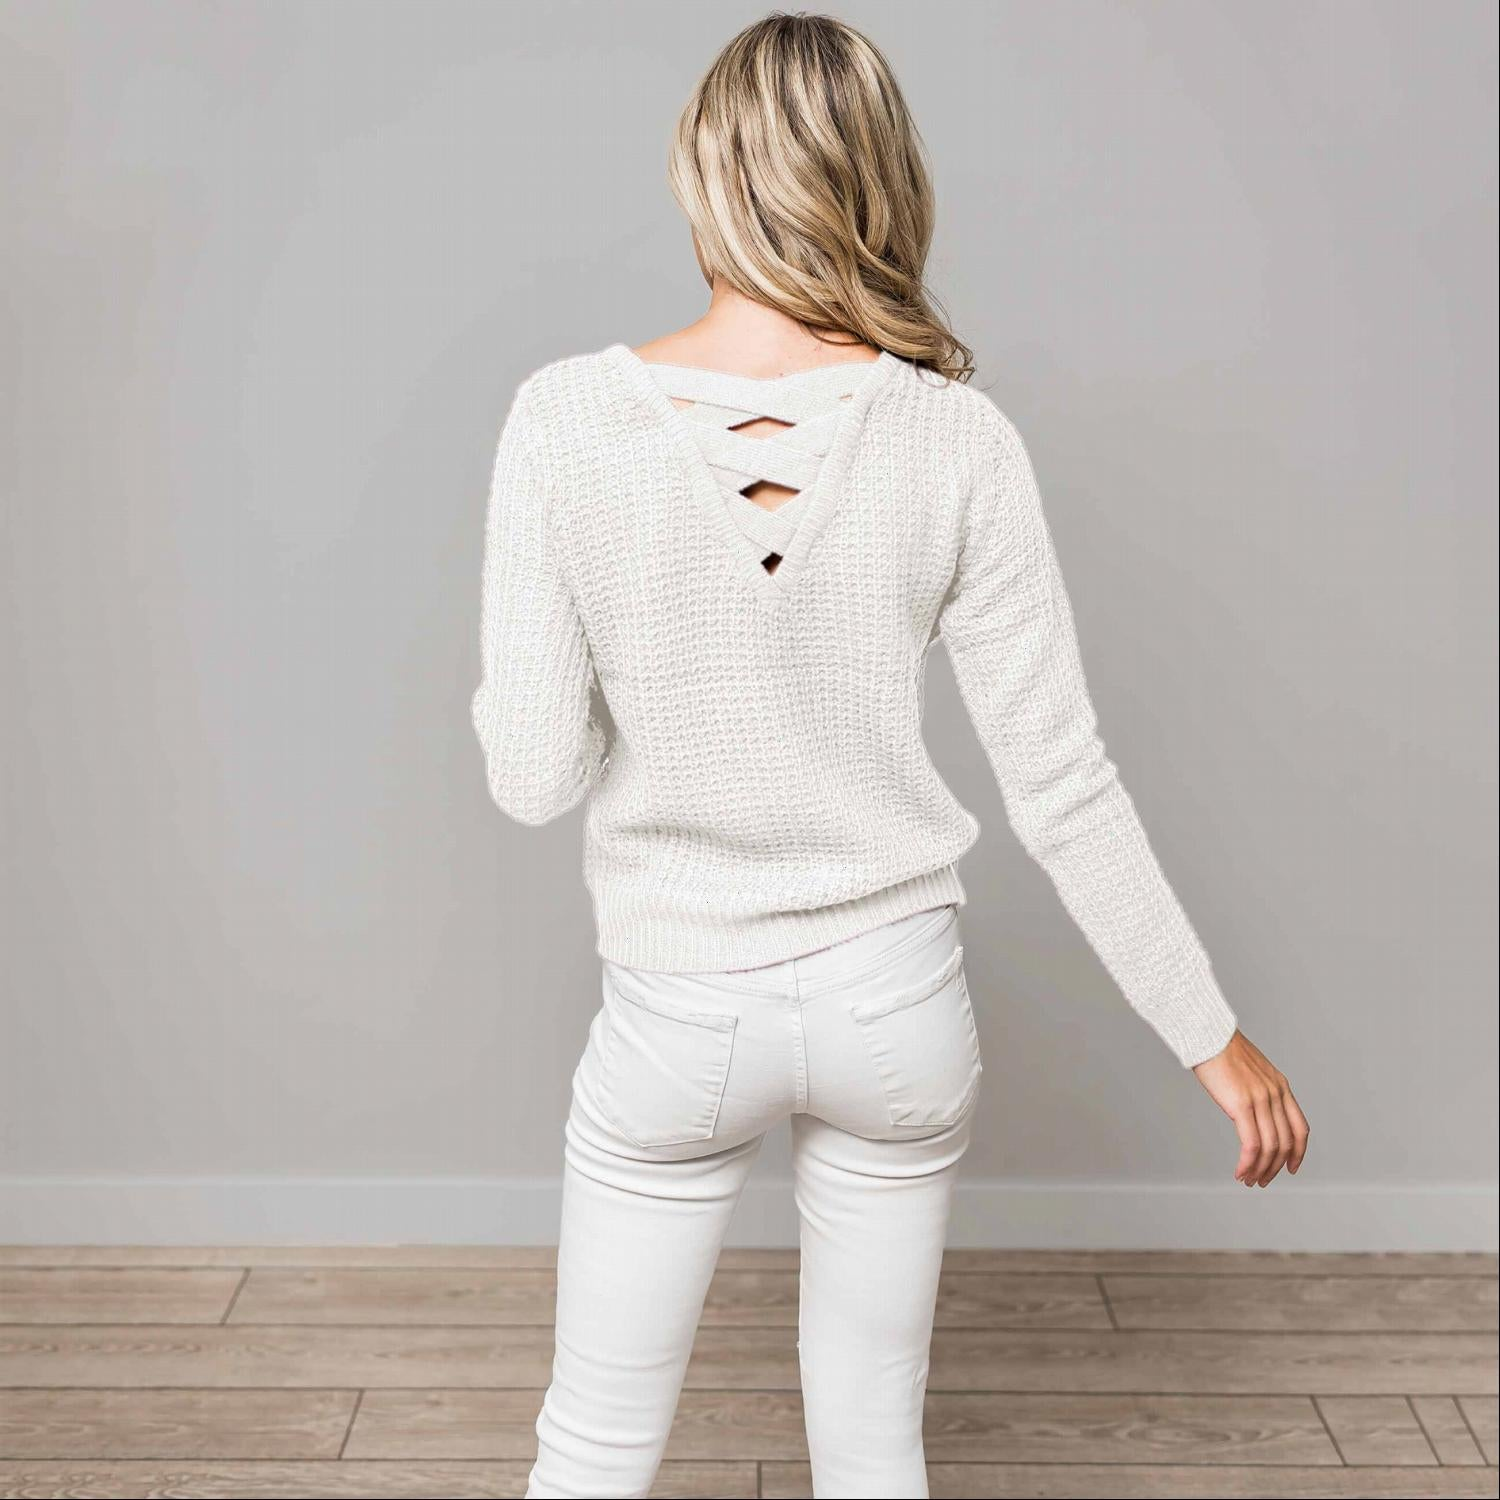 Ivory Solid Lace Up Back Knit Sweater Top